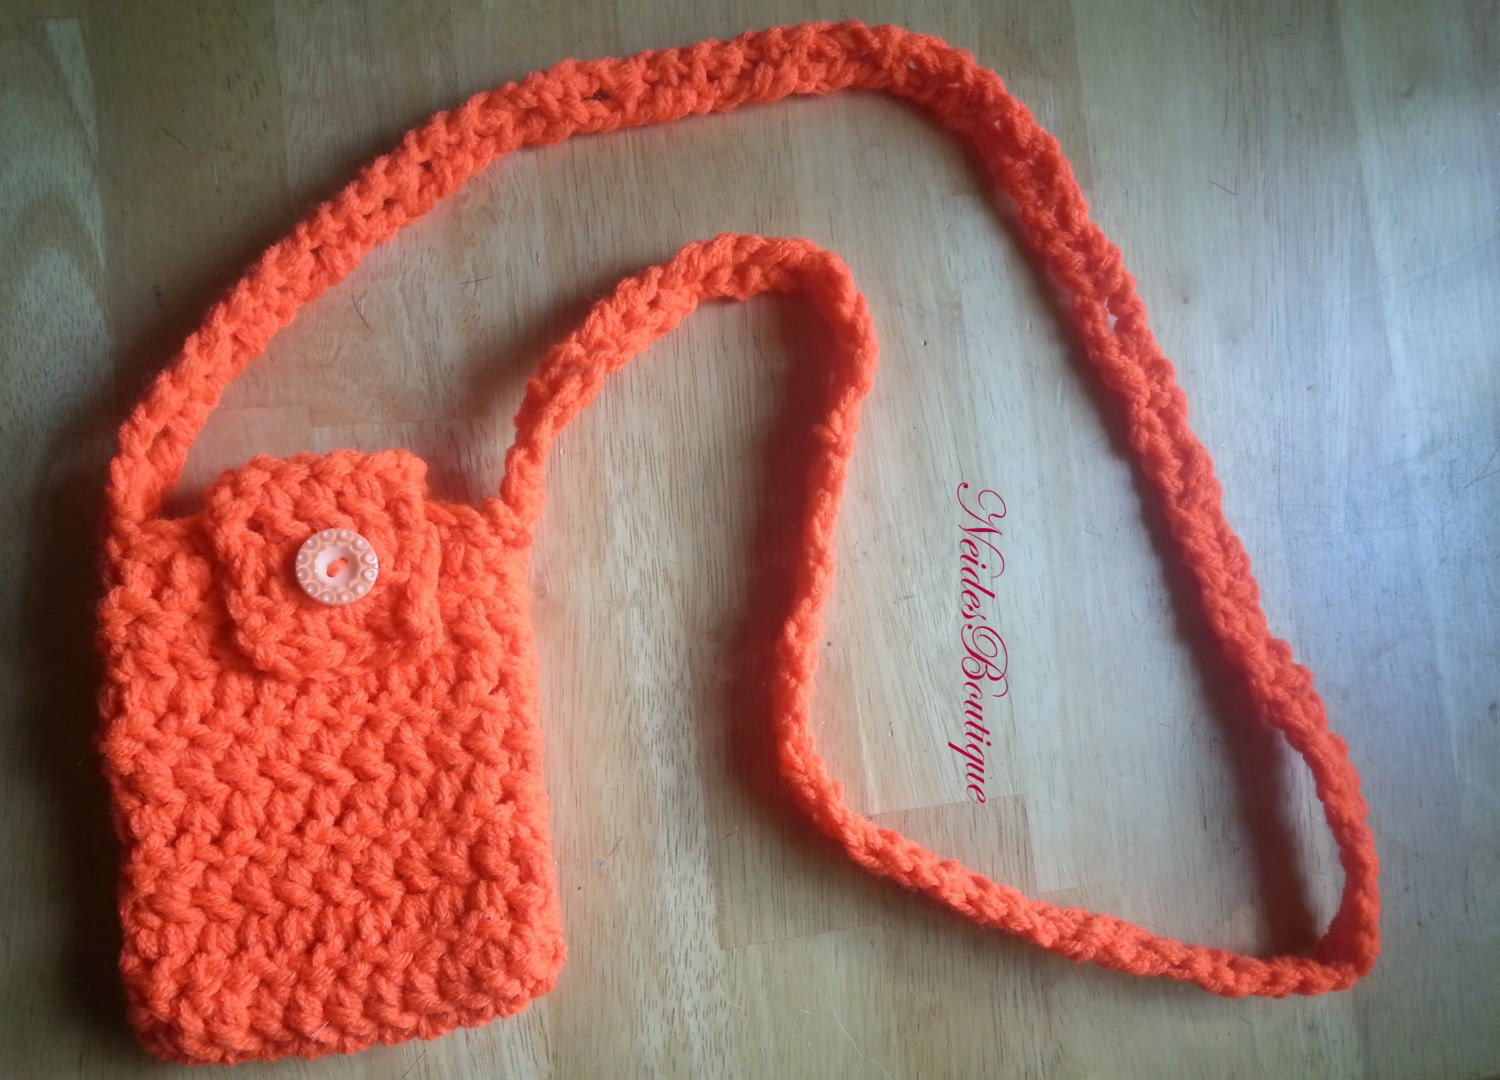 Crochet Cell Phone Purse : Crochet phone case cross body purse cell phone by NeidesBoutique